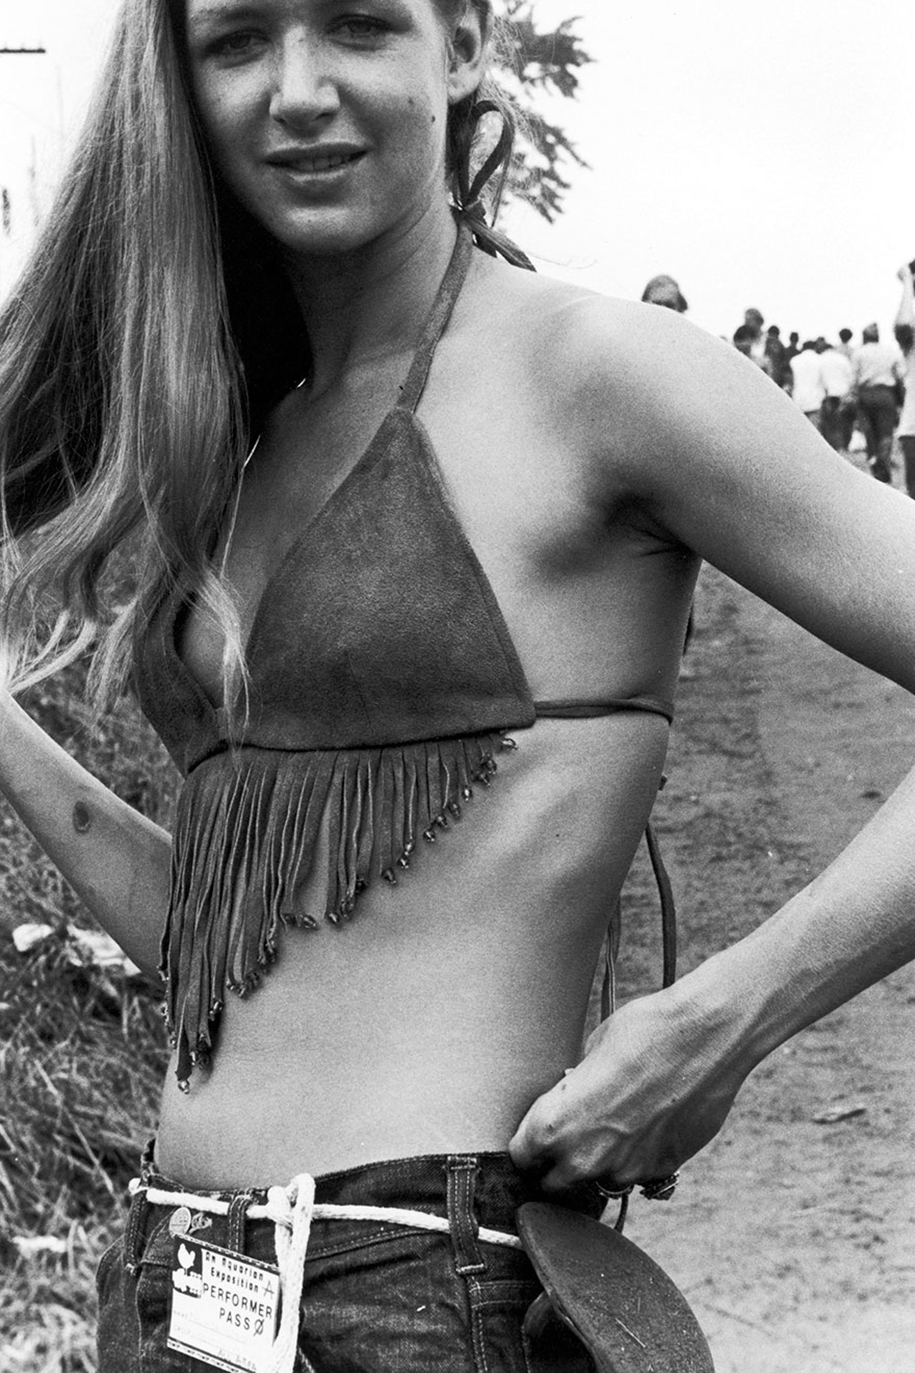 women-fashion-of-60s-woodstock-1969-2